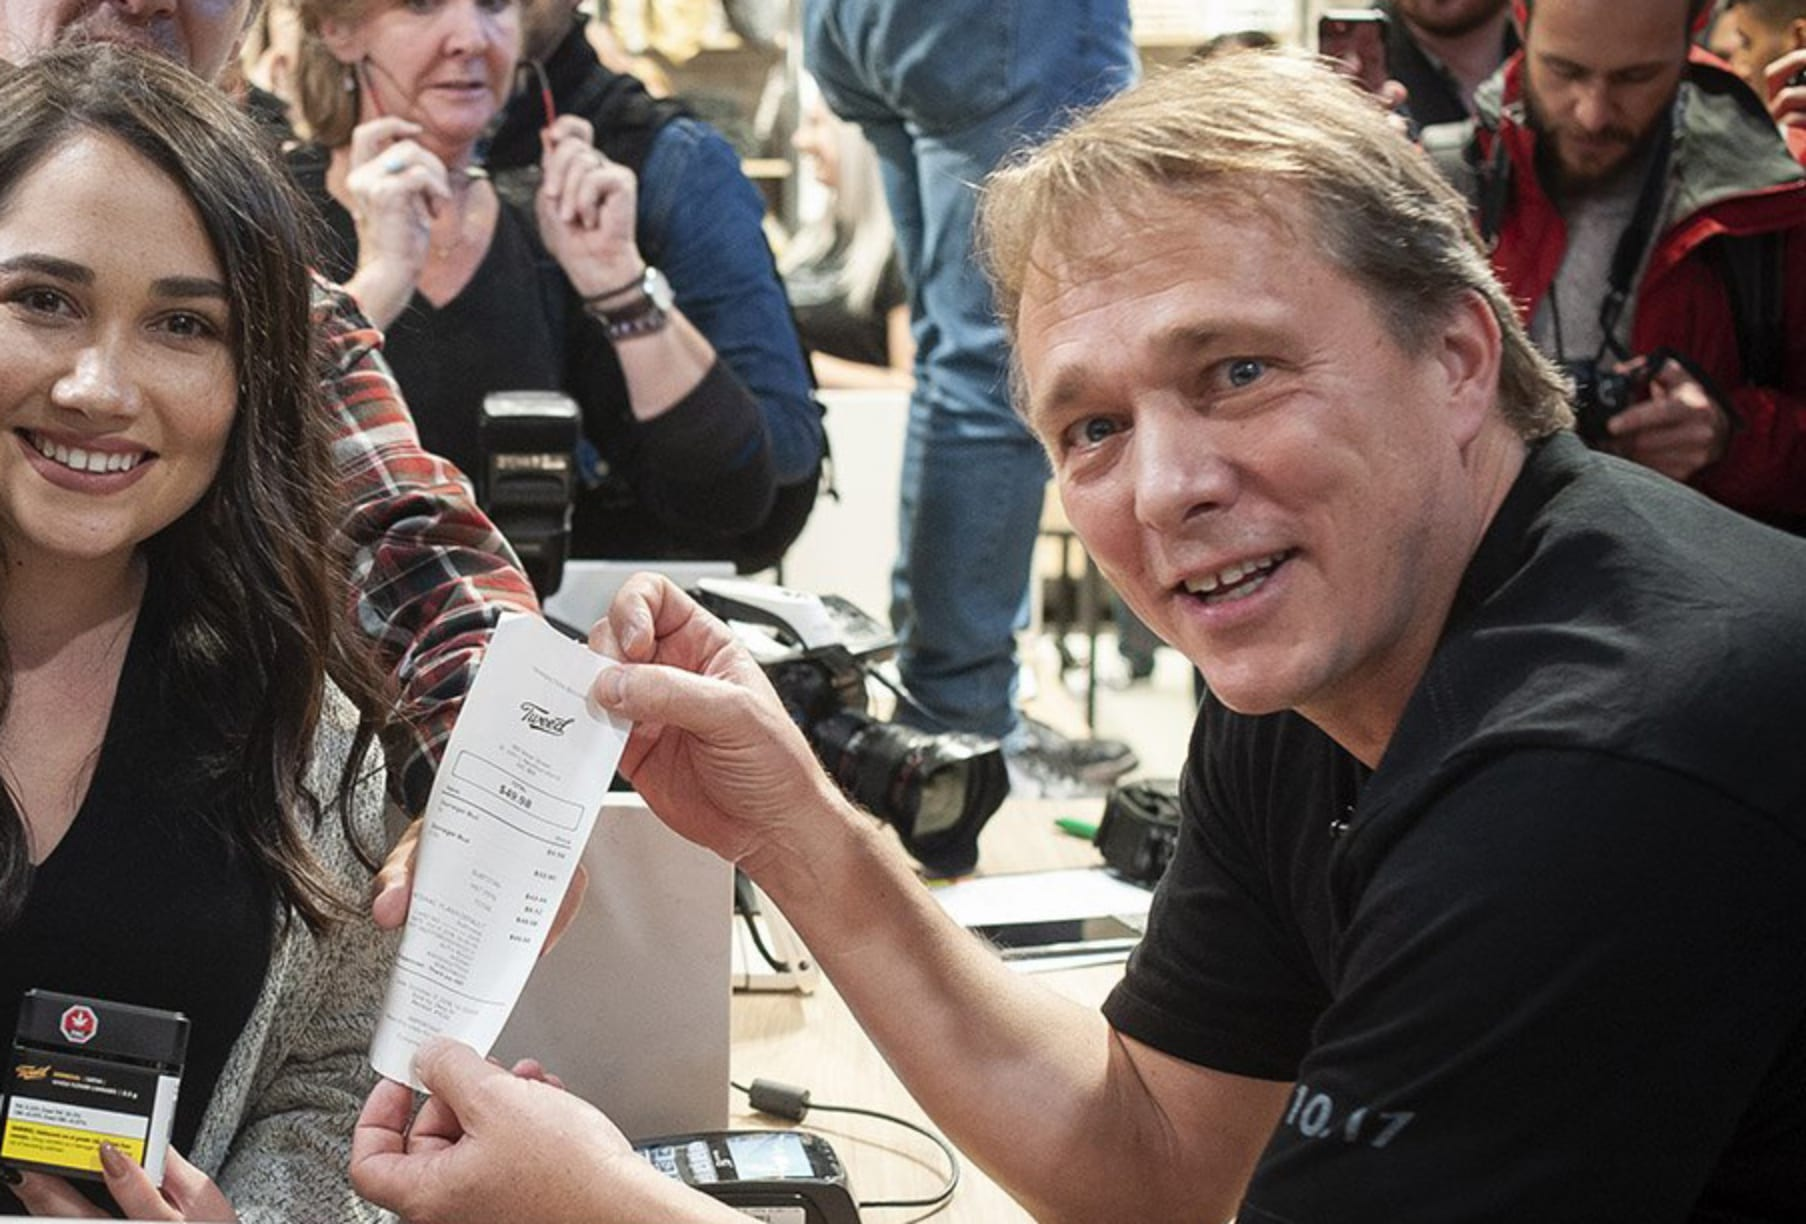 Bruce Linton Joins Vireo as Executive Chairman, Winning Since Breakup With Canopy Growth